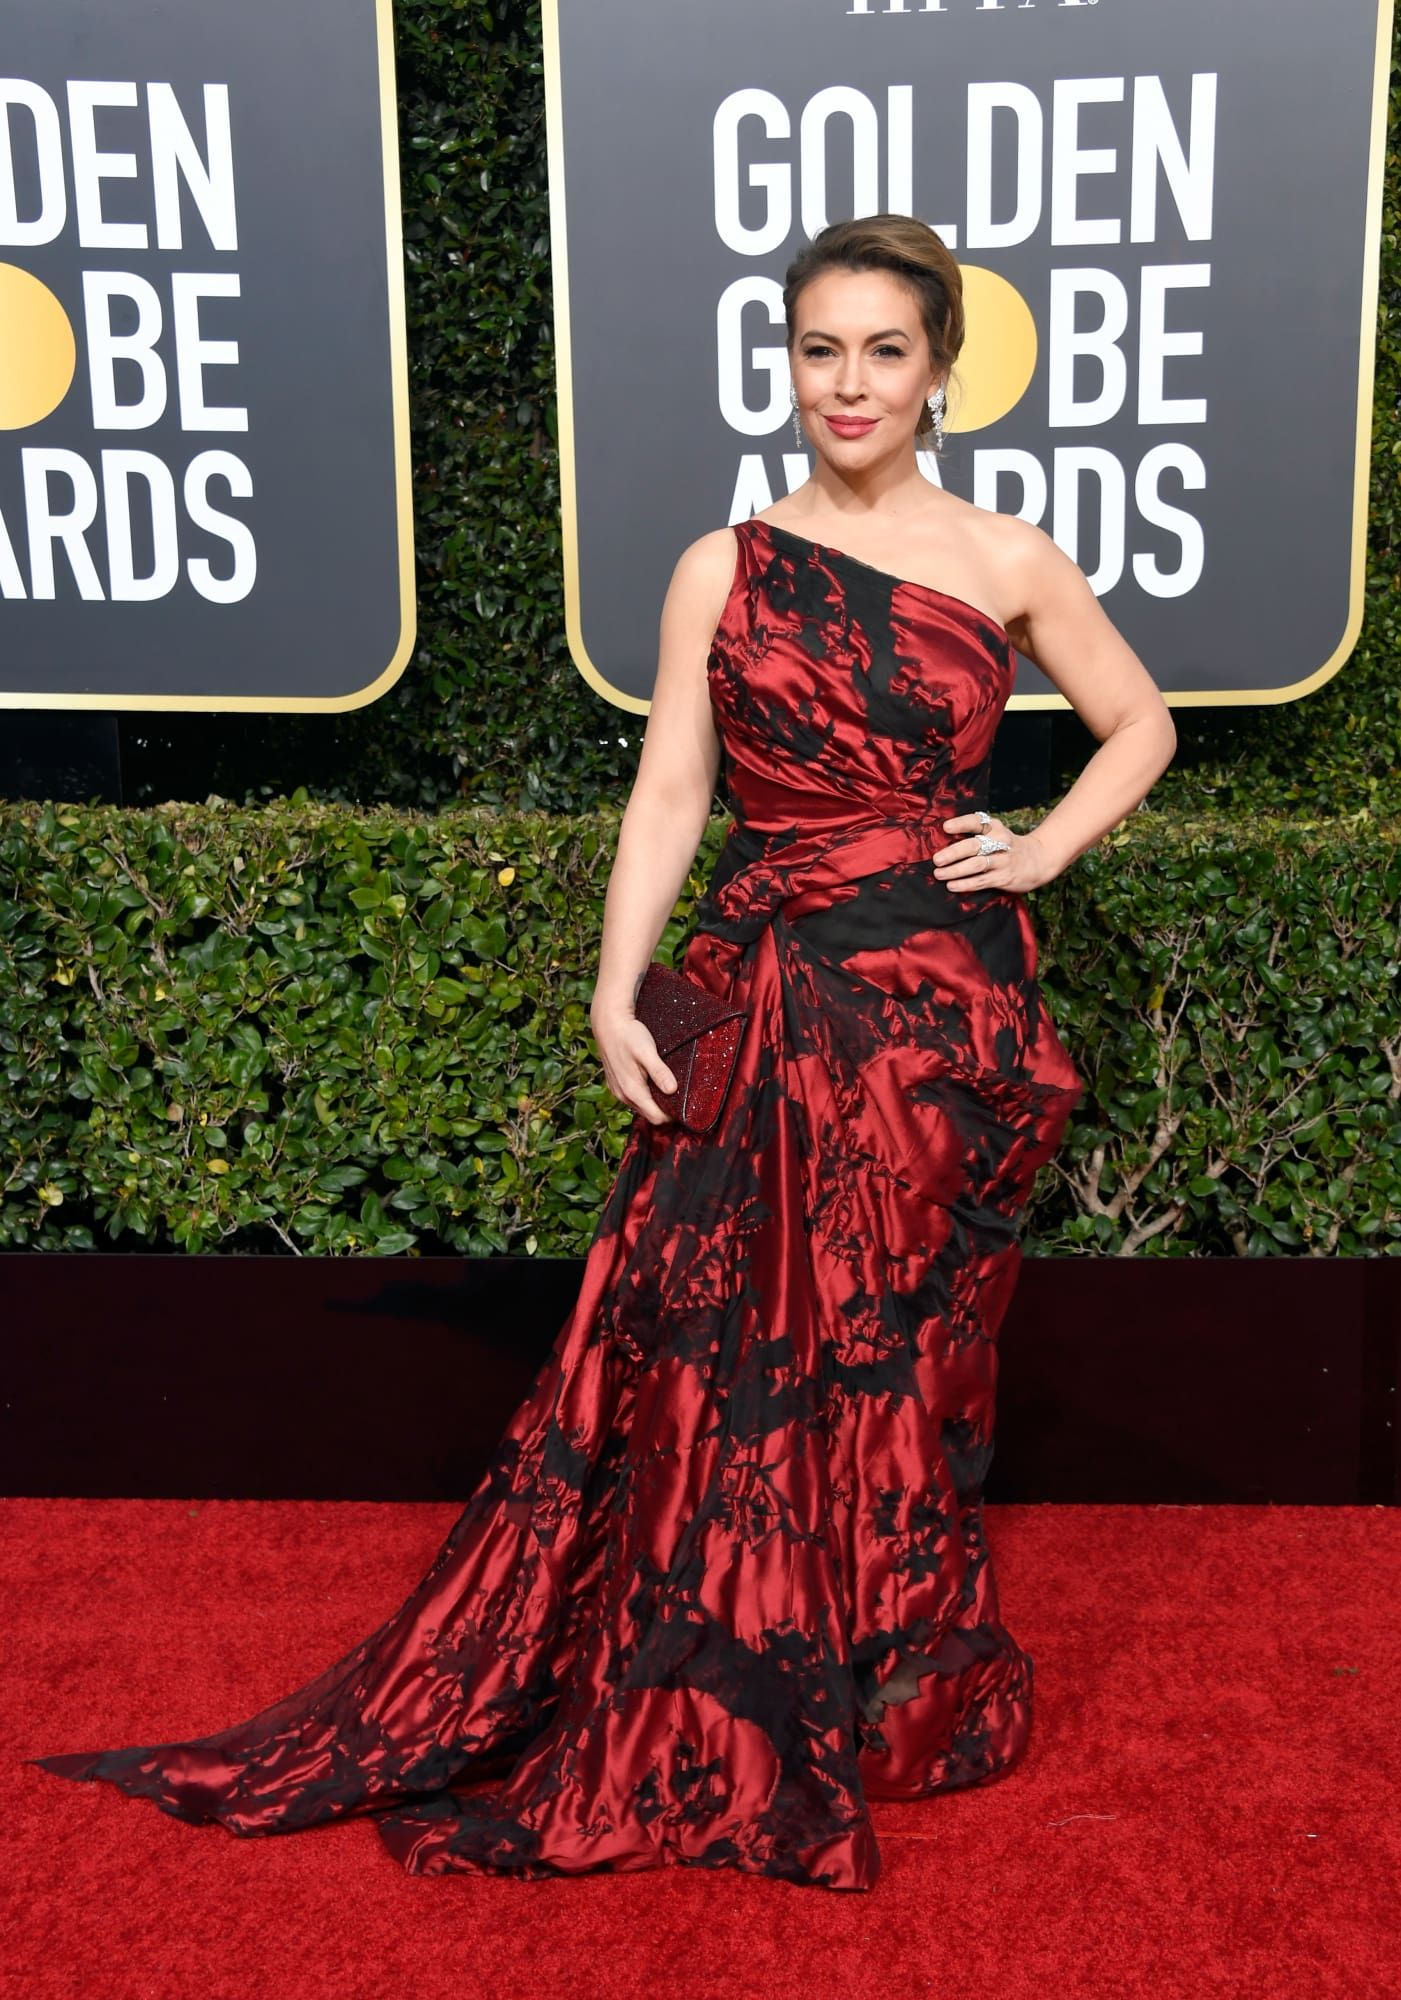 Golden Globes 2019 Every Look From The Red Carpet Strapless